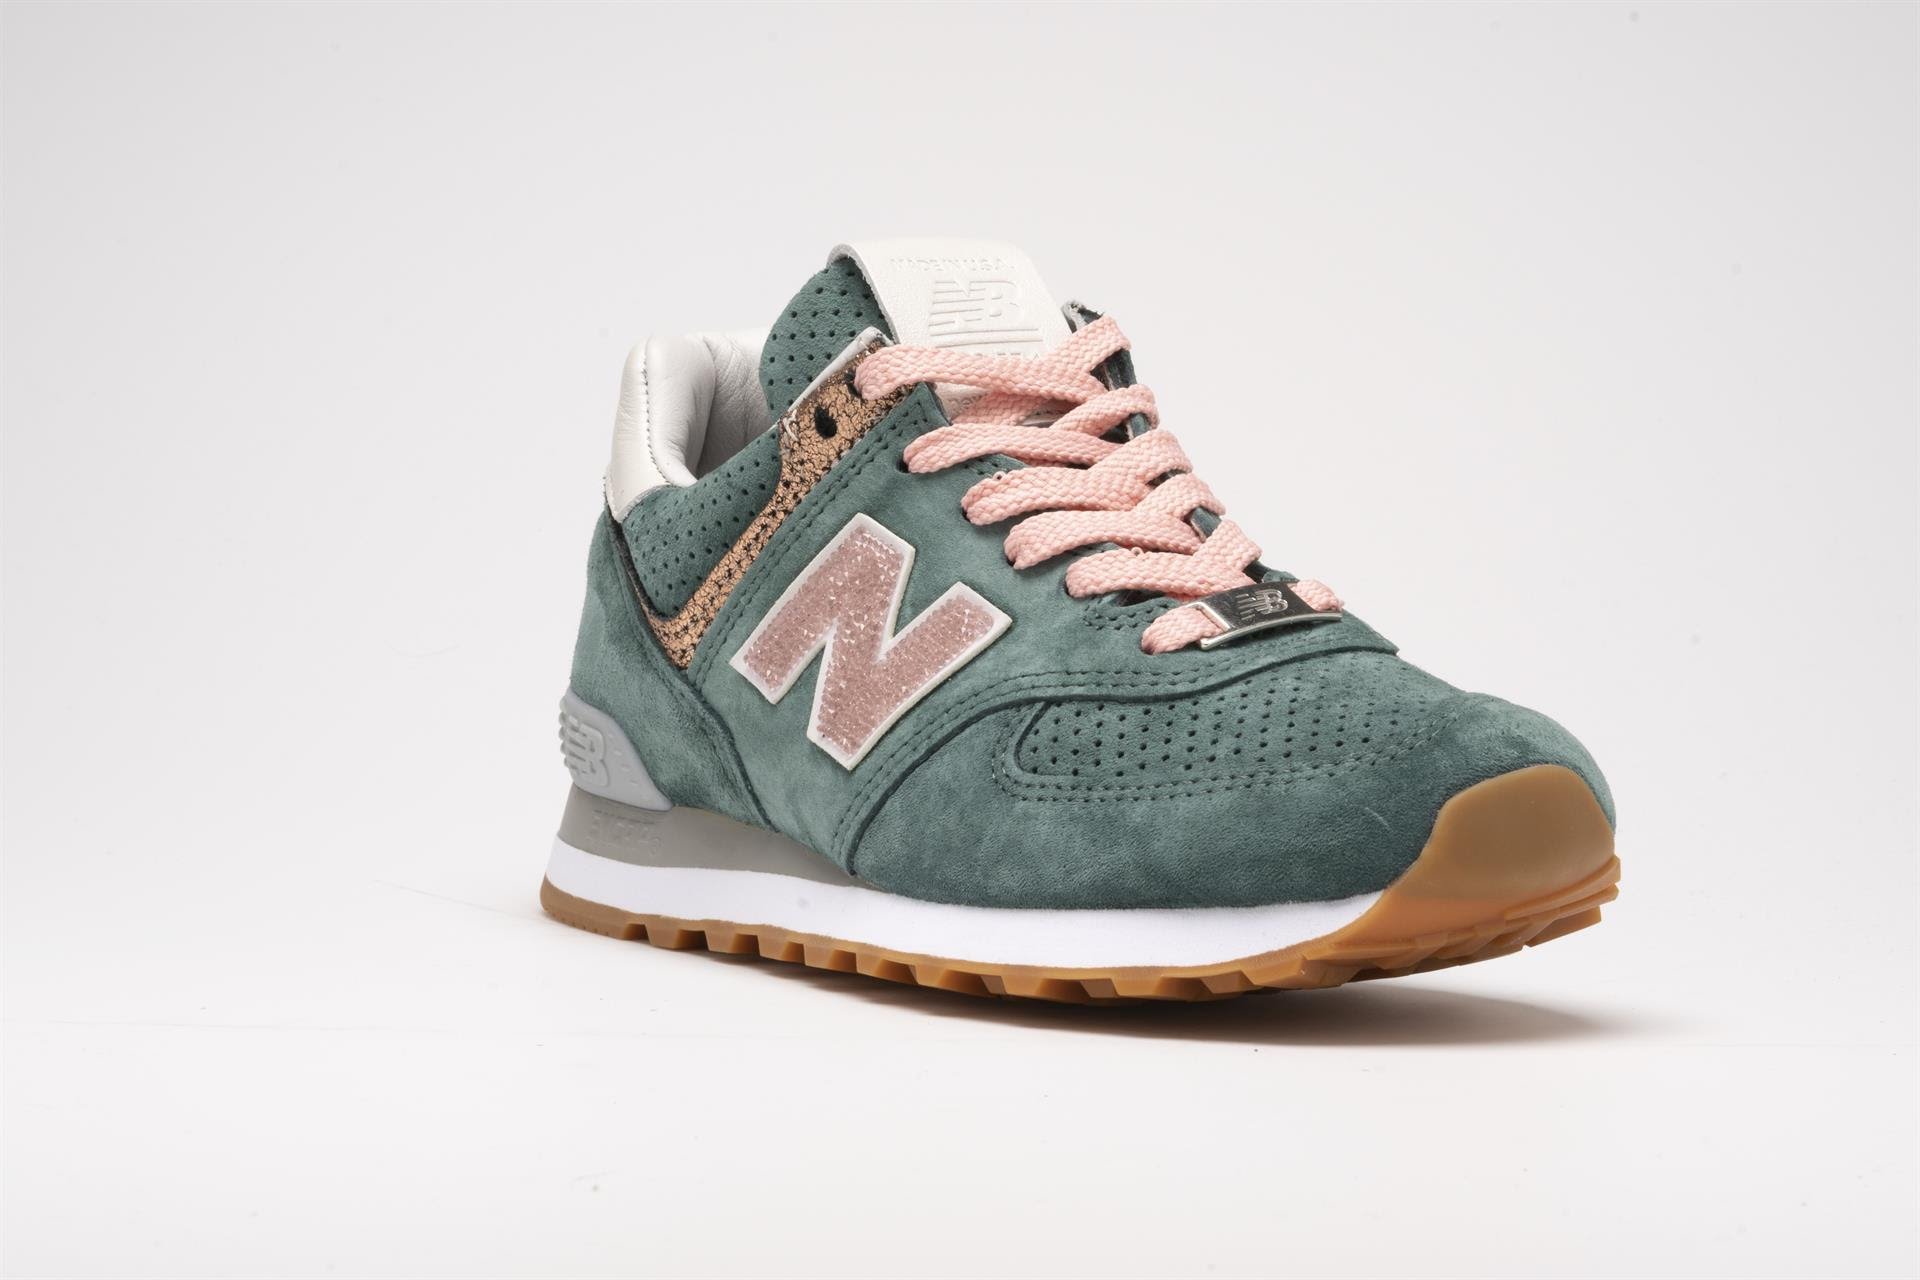 quality design 3d7b0 58df6 Image Credit  New Balance. The limited NB1 574 ...